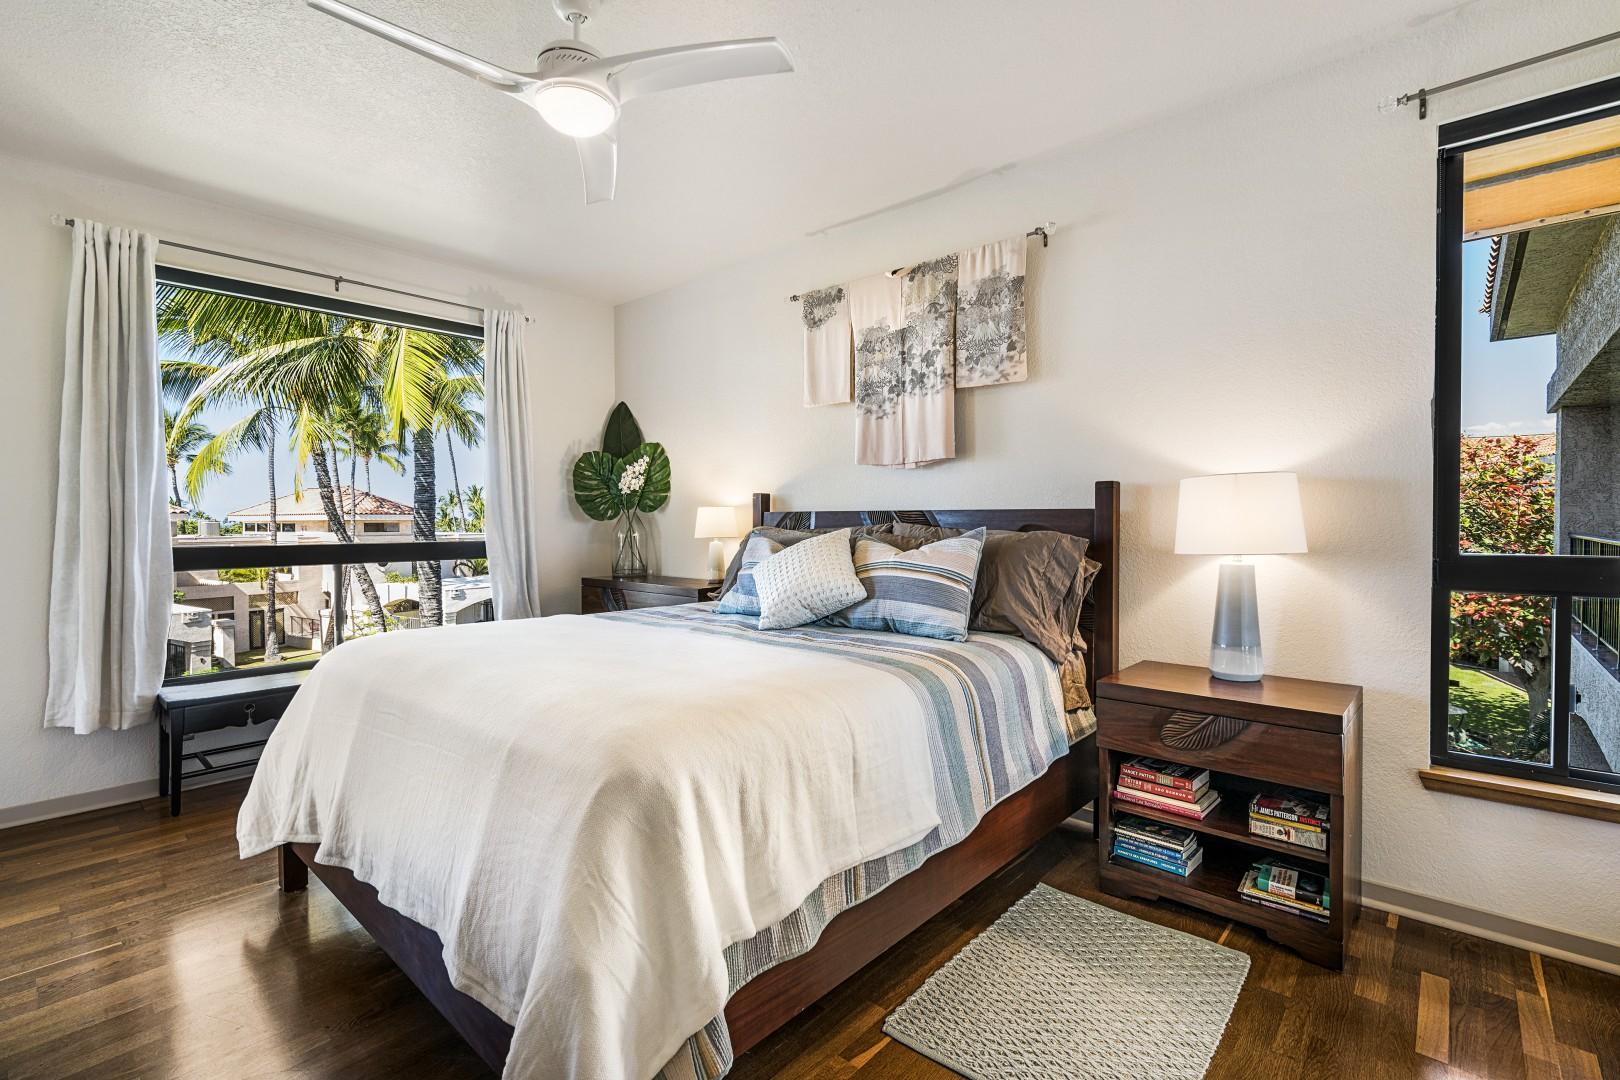 Master bedroom equipped with Queen bed